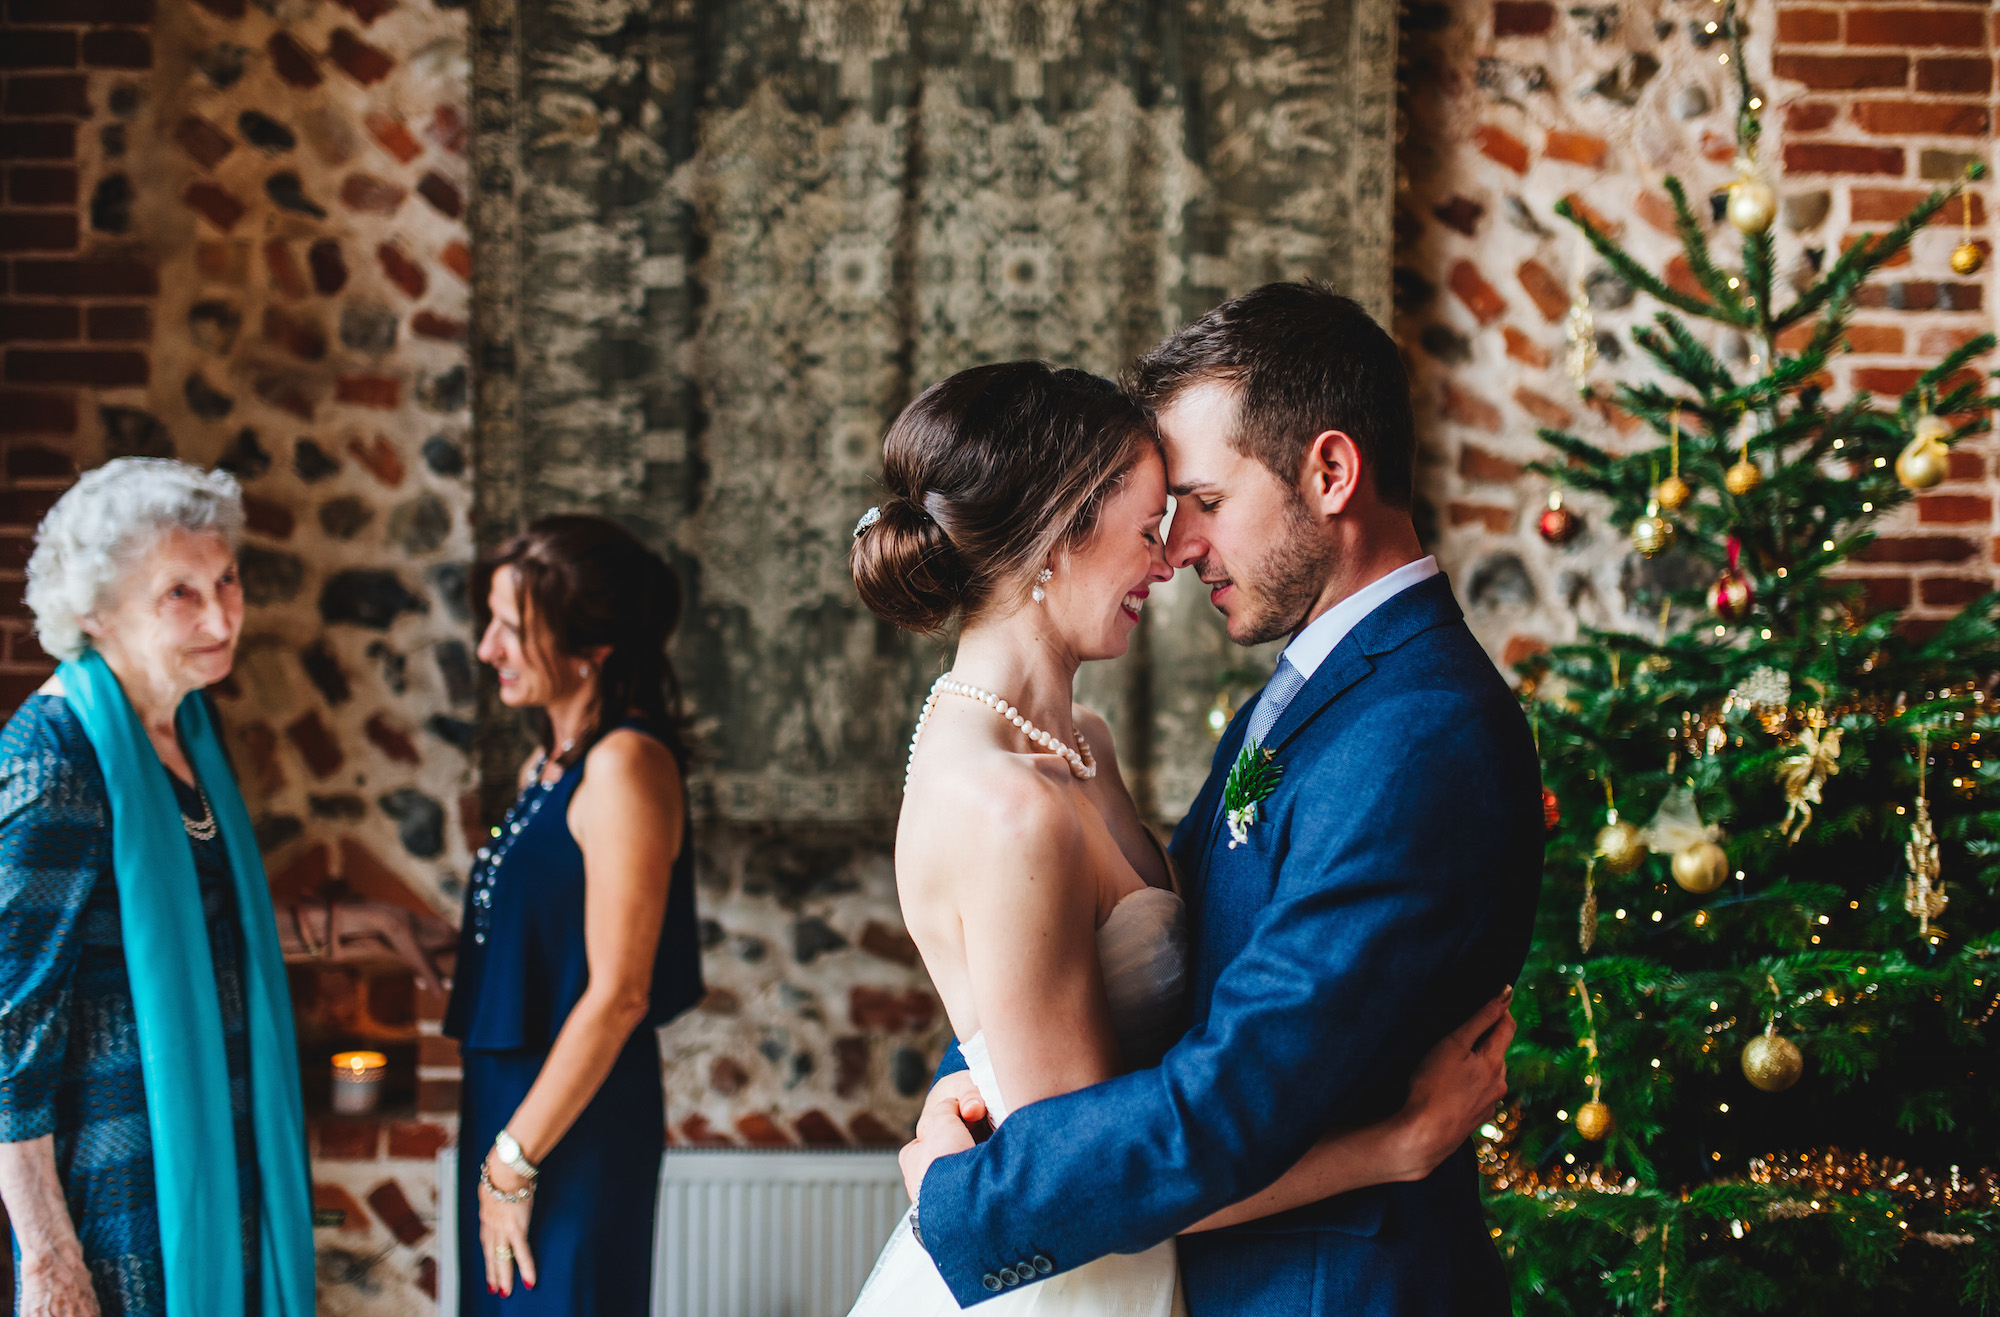 Chaucer Barn Norfolk Wedding Photographer Bride Groom Just Married Family Touching Moment.jpg